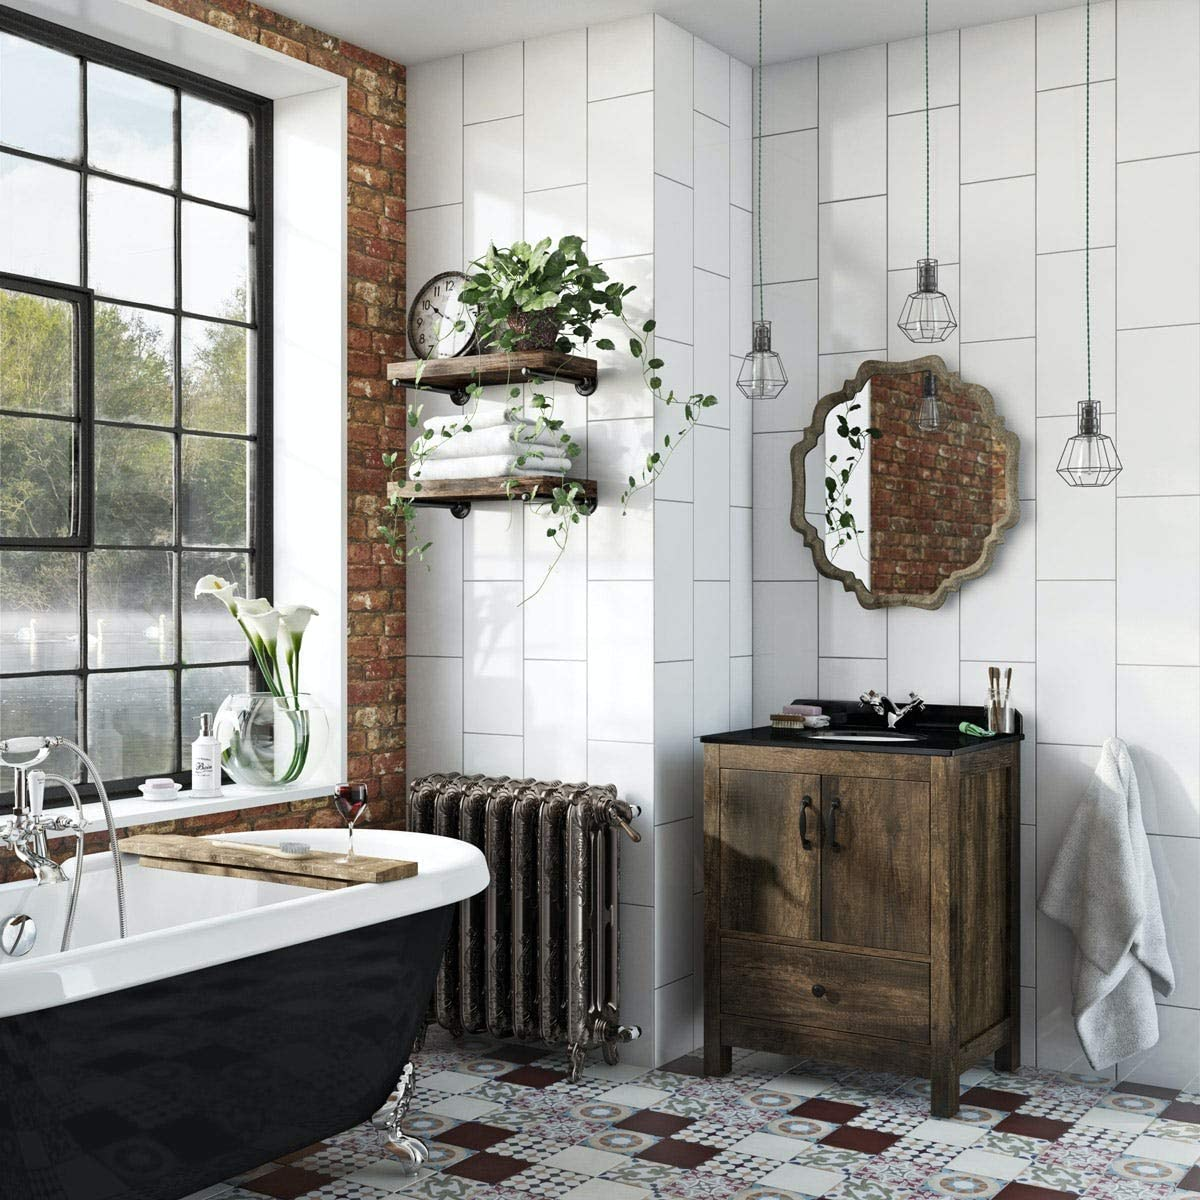 Dalston floorstanding vanity unit and black marble basin 650mm The Bath Co